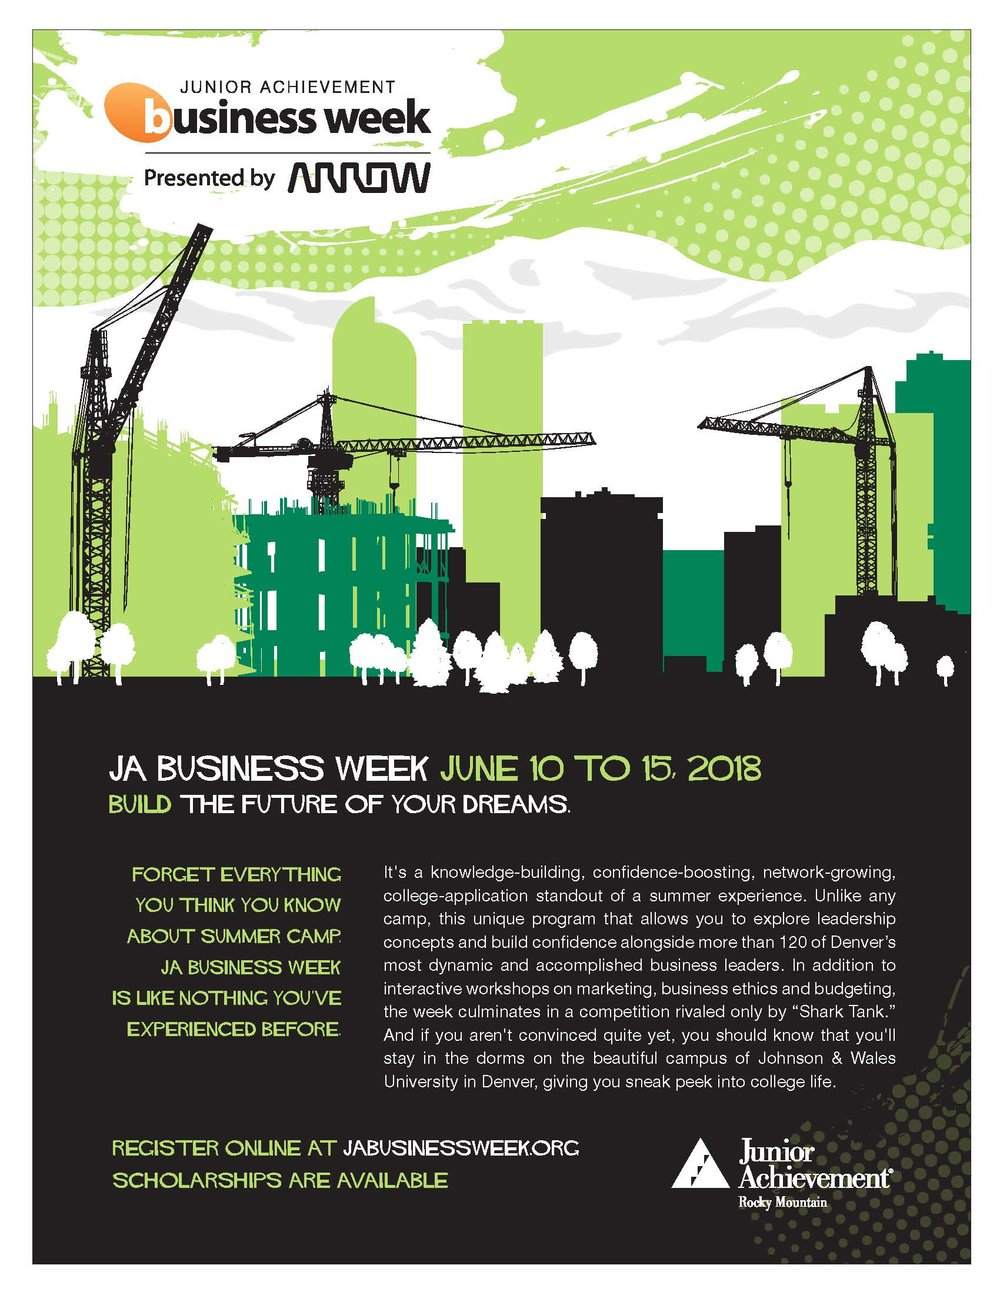 2018 Business Week flyer.jpg